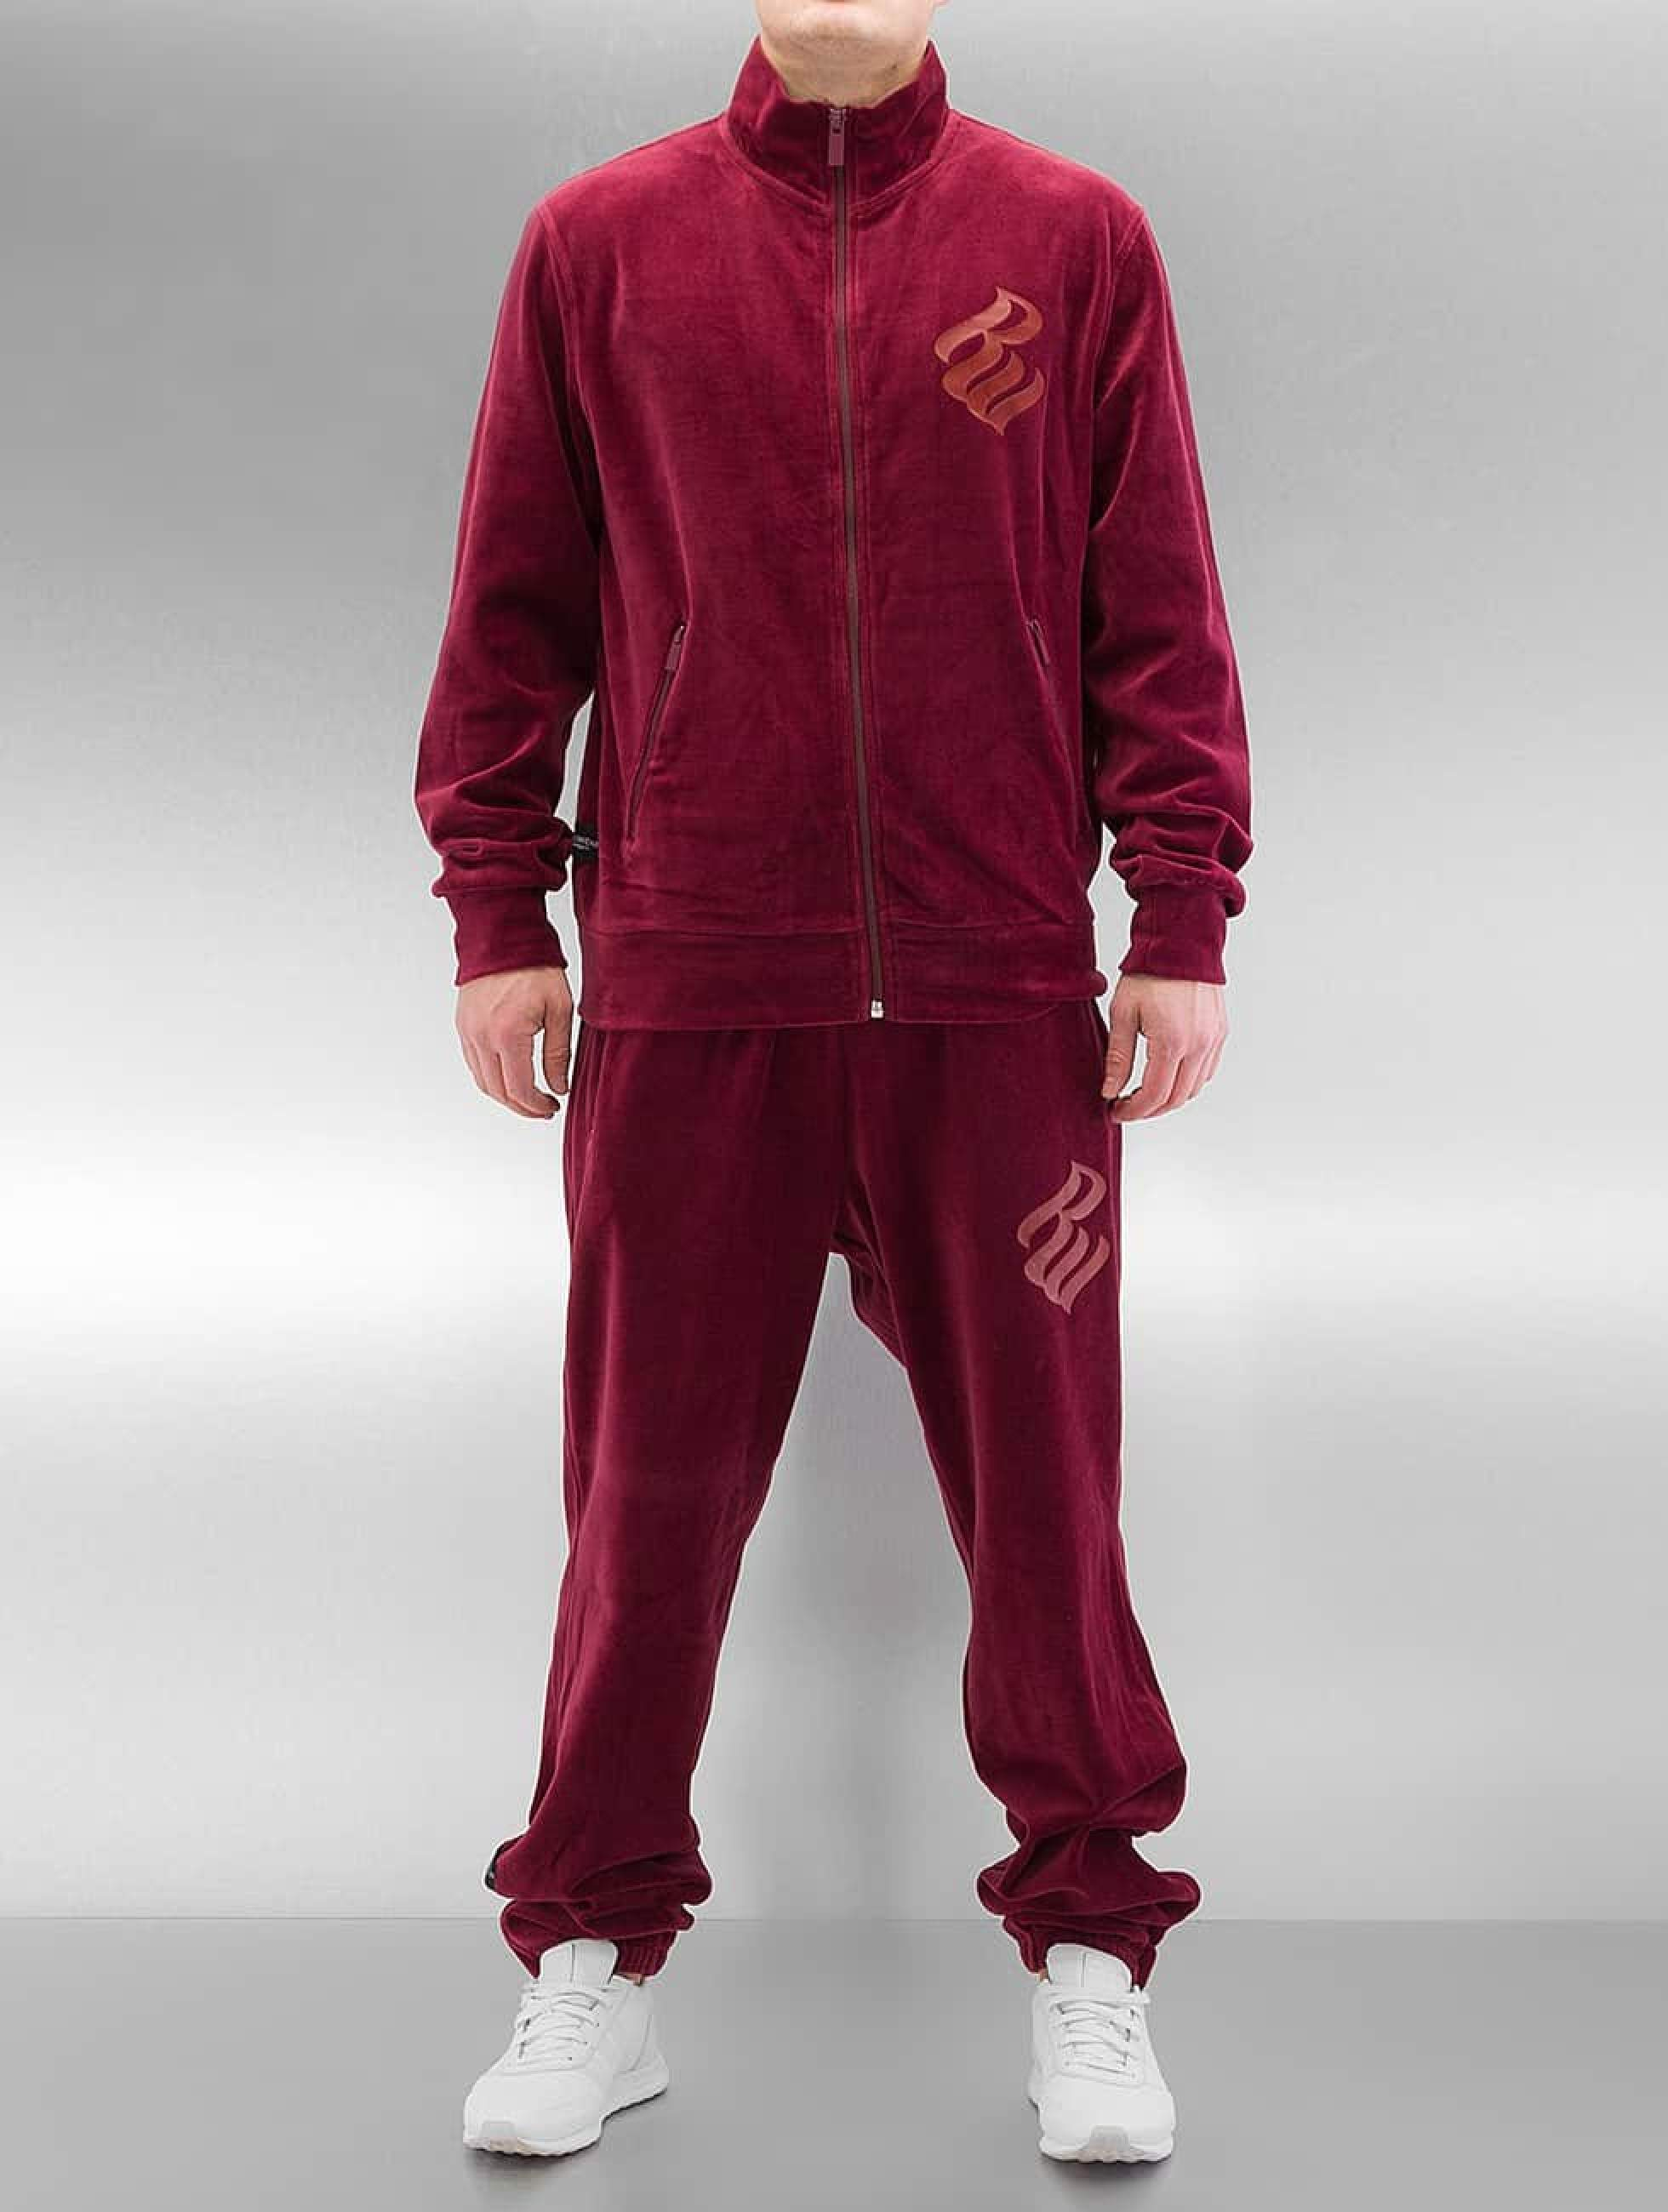 Rocawear / Suits Velour in red S